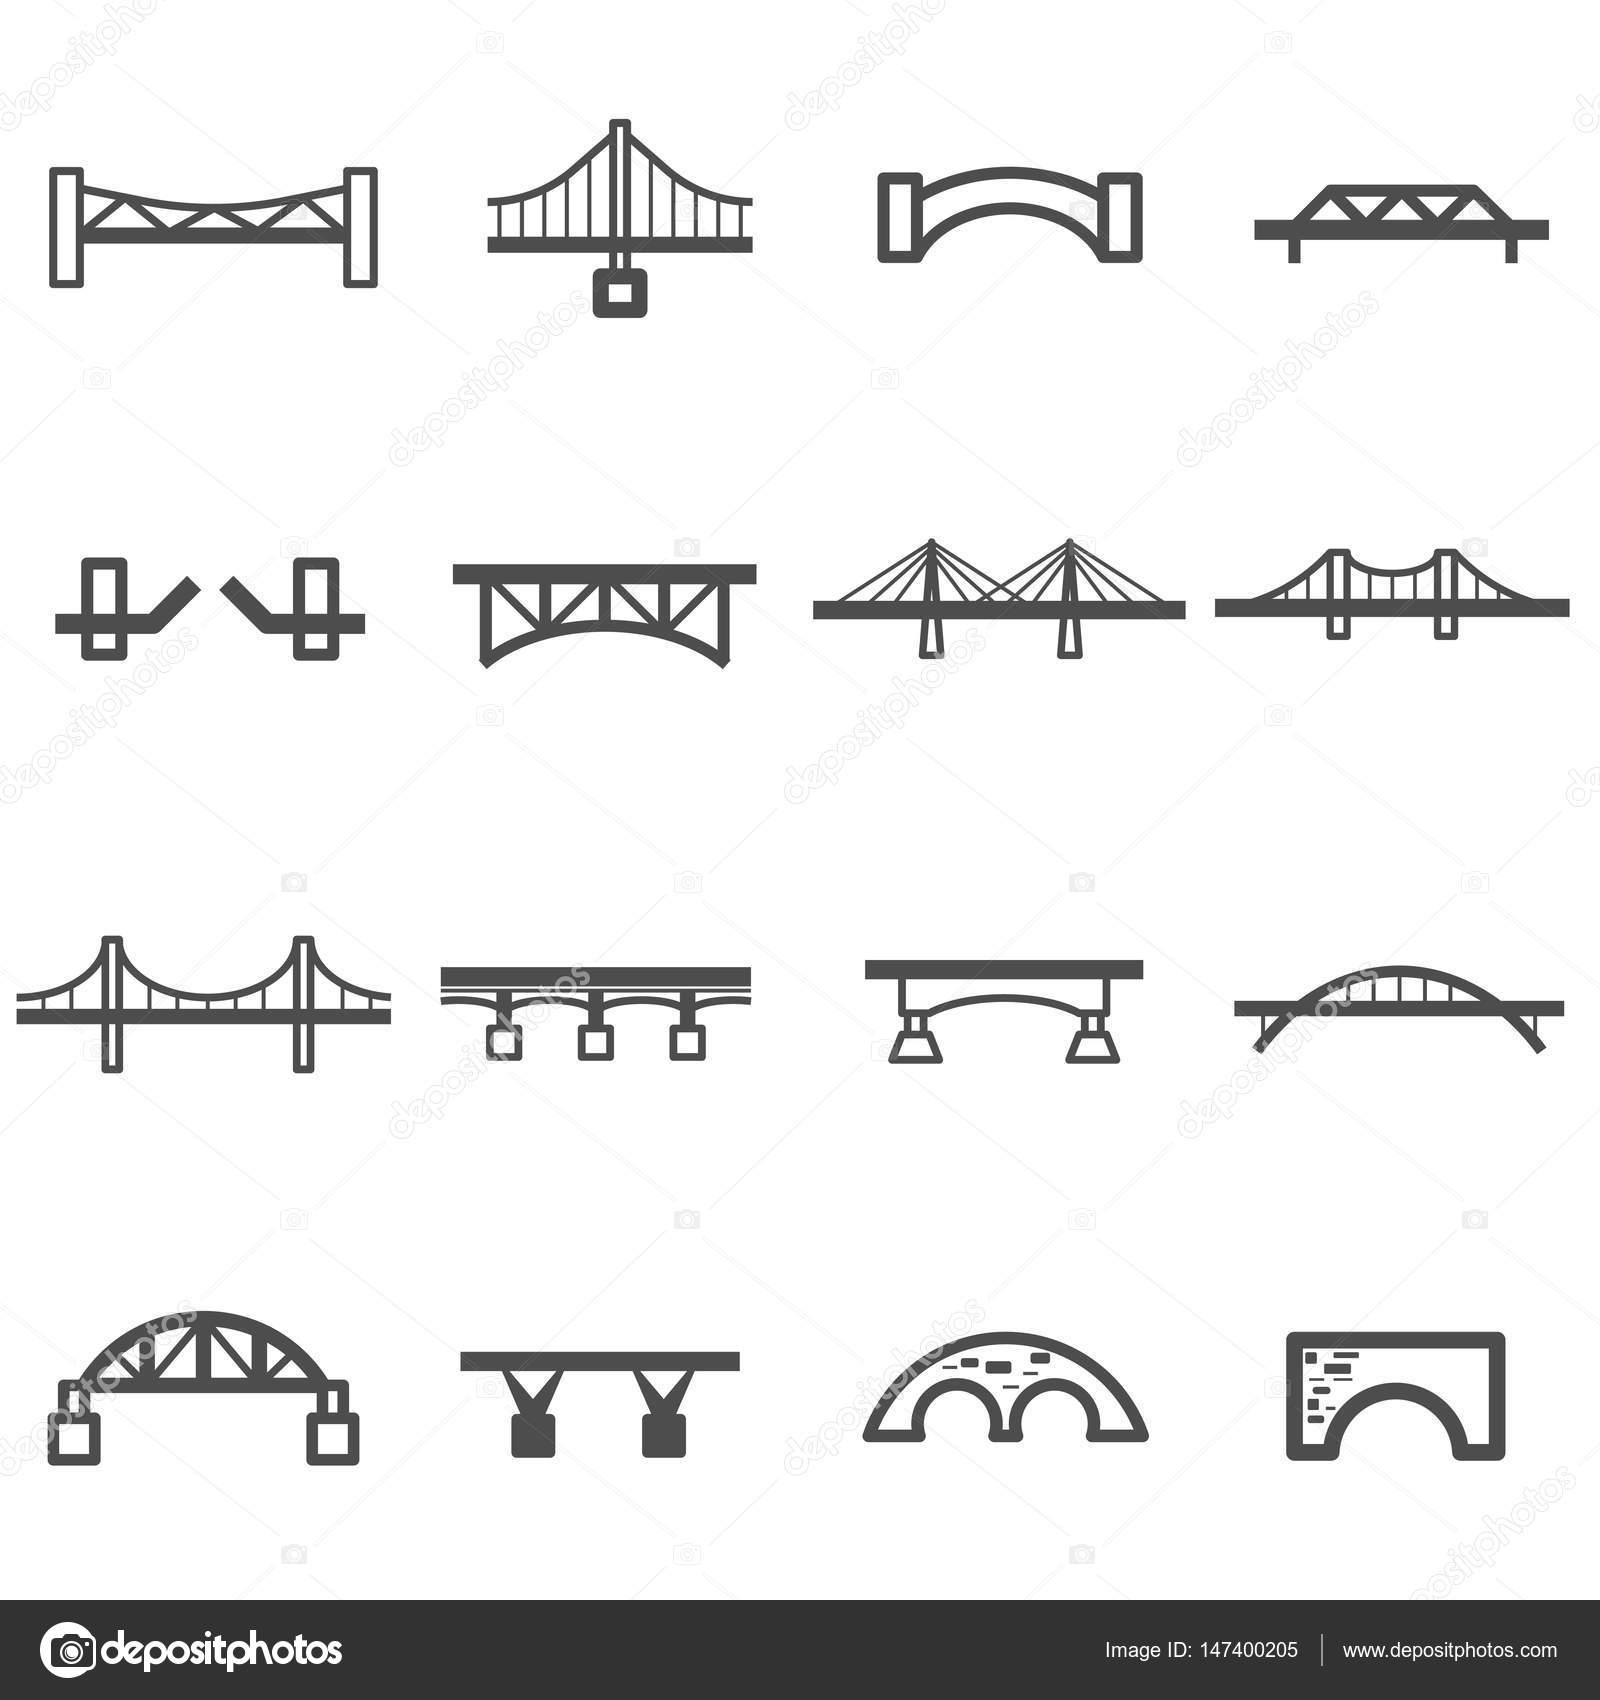 Bridge Line Icon Set Vector Stock Chingraph 147400205 Diagram Related Keywords Suggestions Beam By Find Similar Images